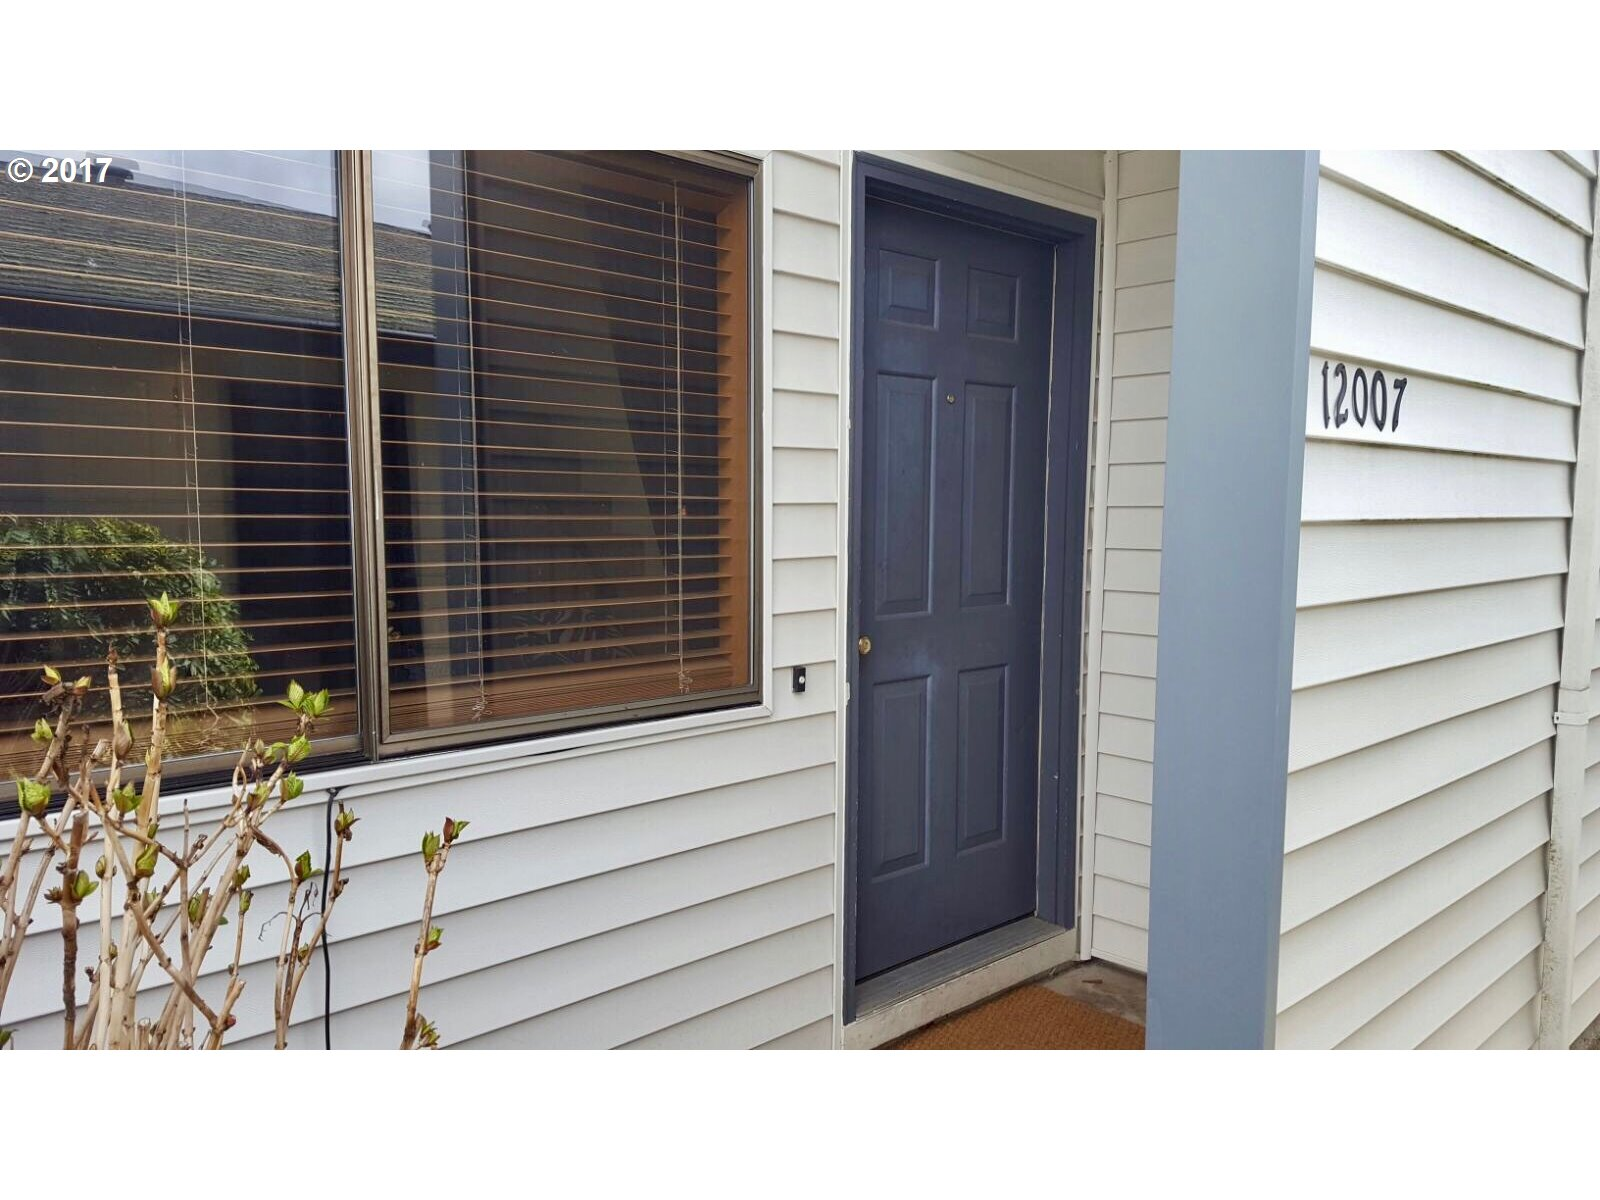 896 sq. ft 2 bedrooms 1 bathrooms  House For Sale,Portland, OR